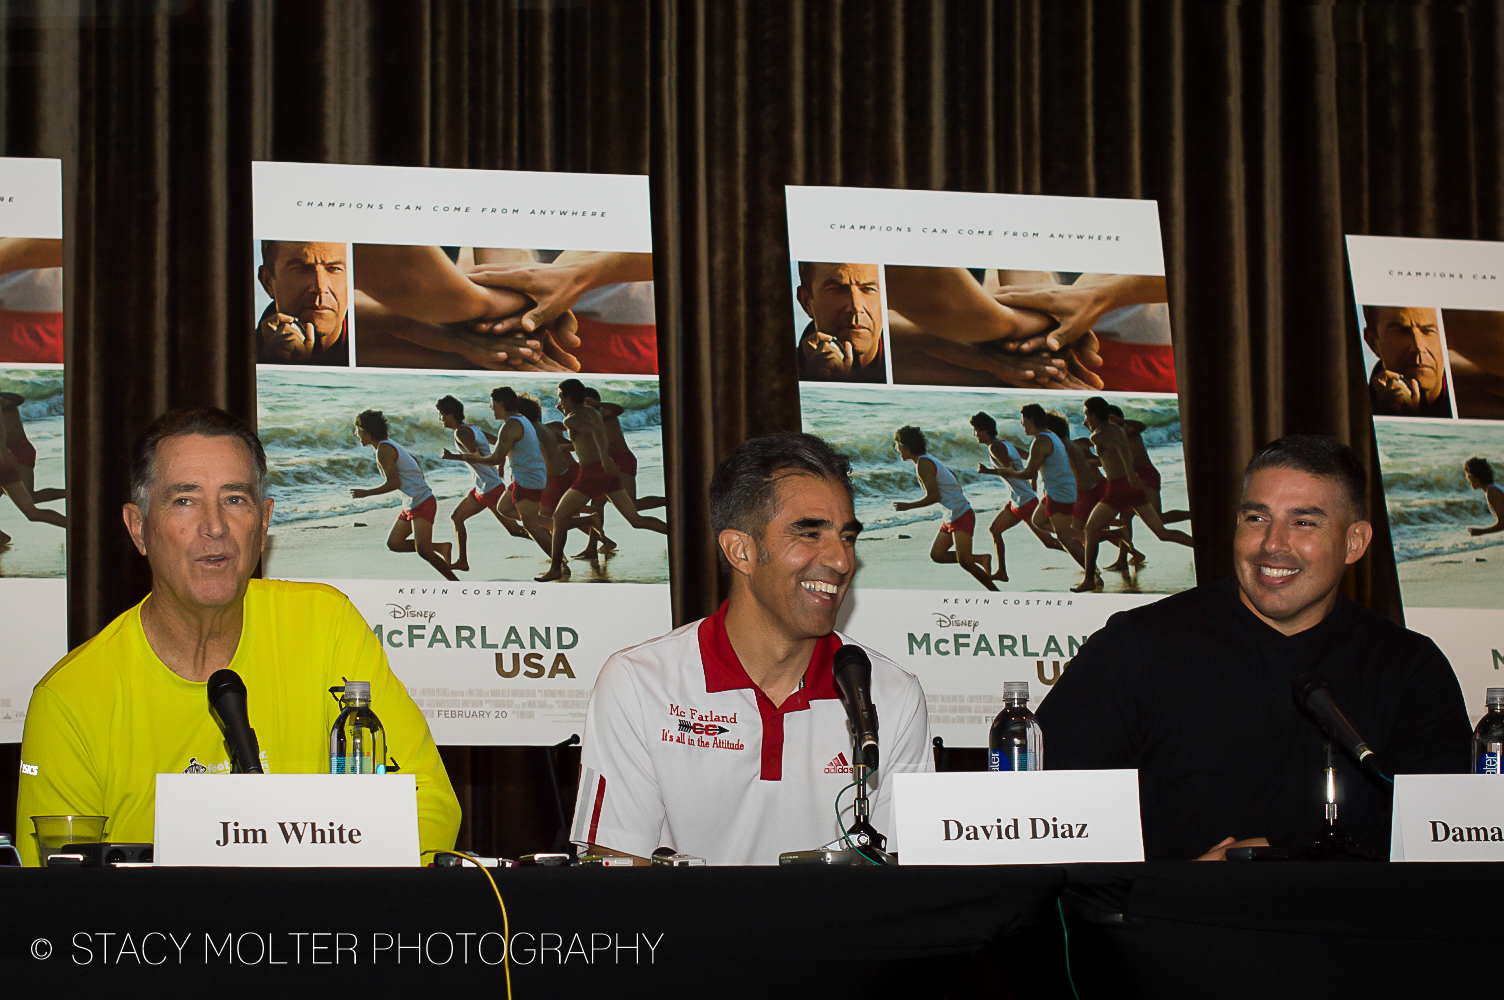 Jim White, David Diaz, Damacio Diaz - McFarland USA Press Conference Junket